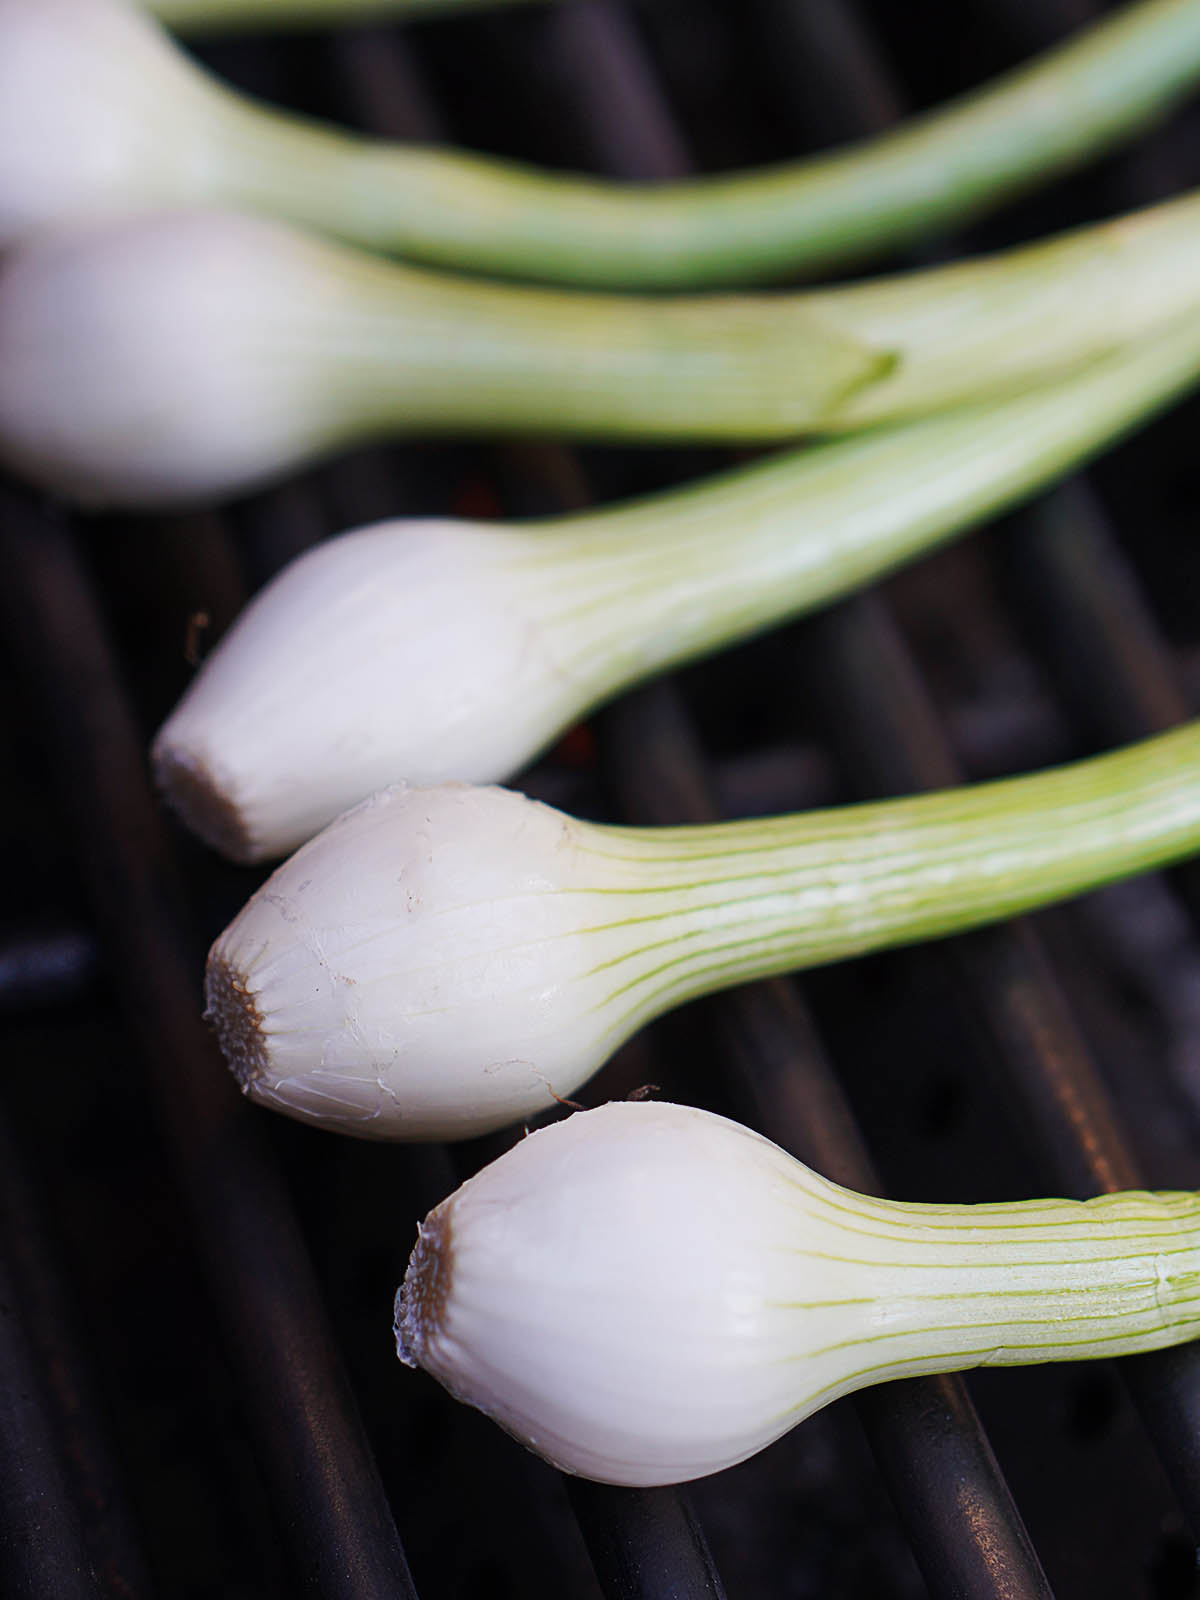 Raw green onions on the grill.